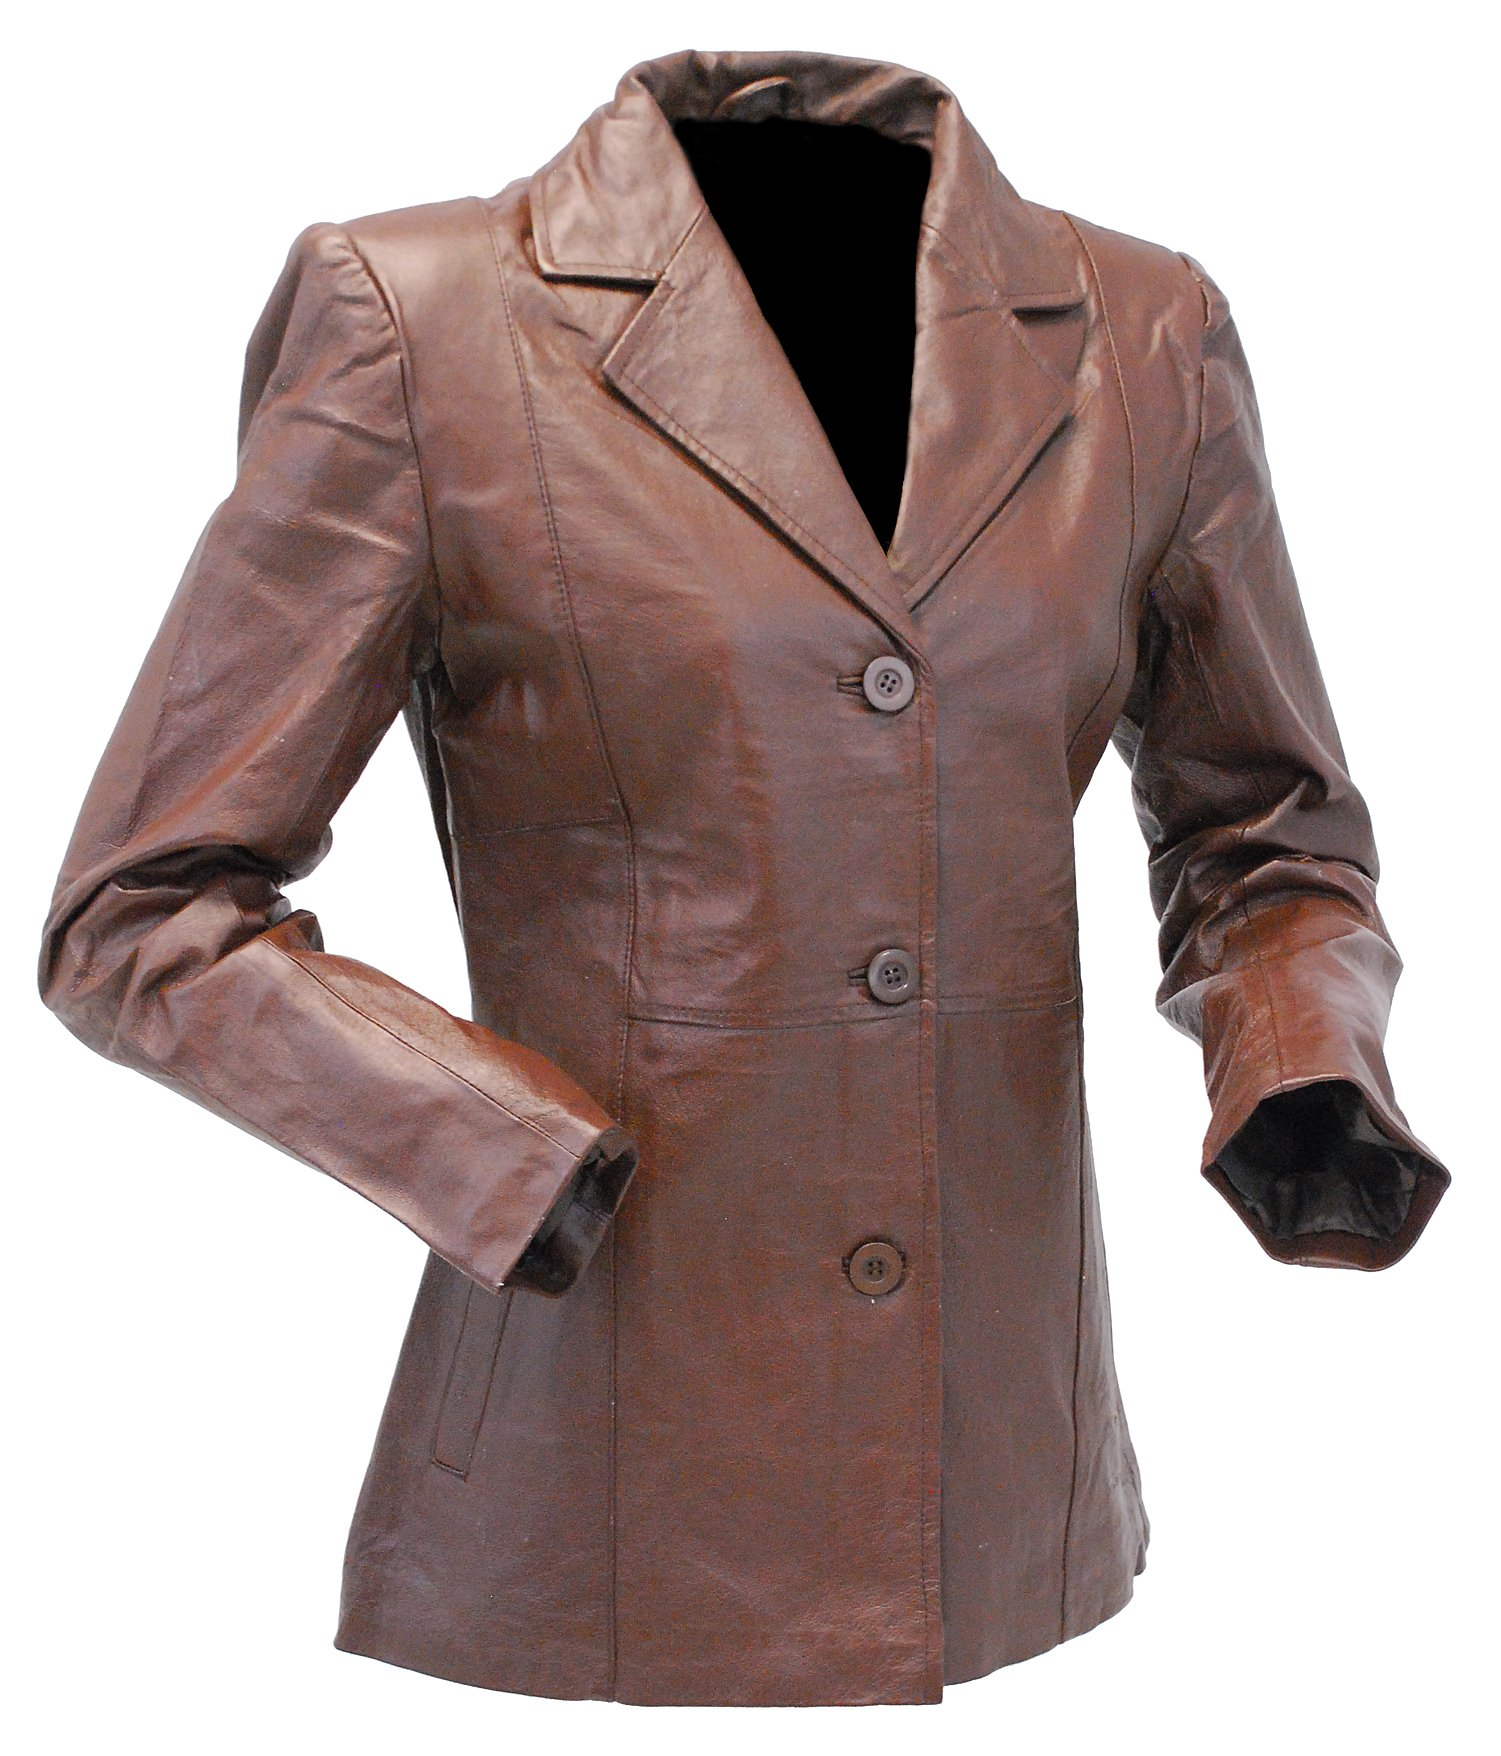 Jamin' Leather Brown Lightweight Women's 3 Button Leather Coat (L) #L31BTN